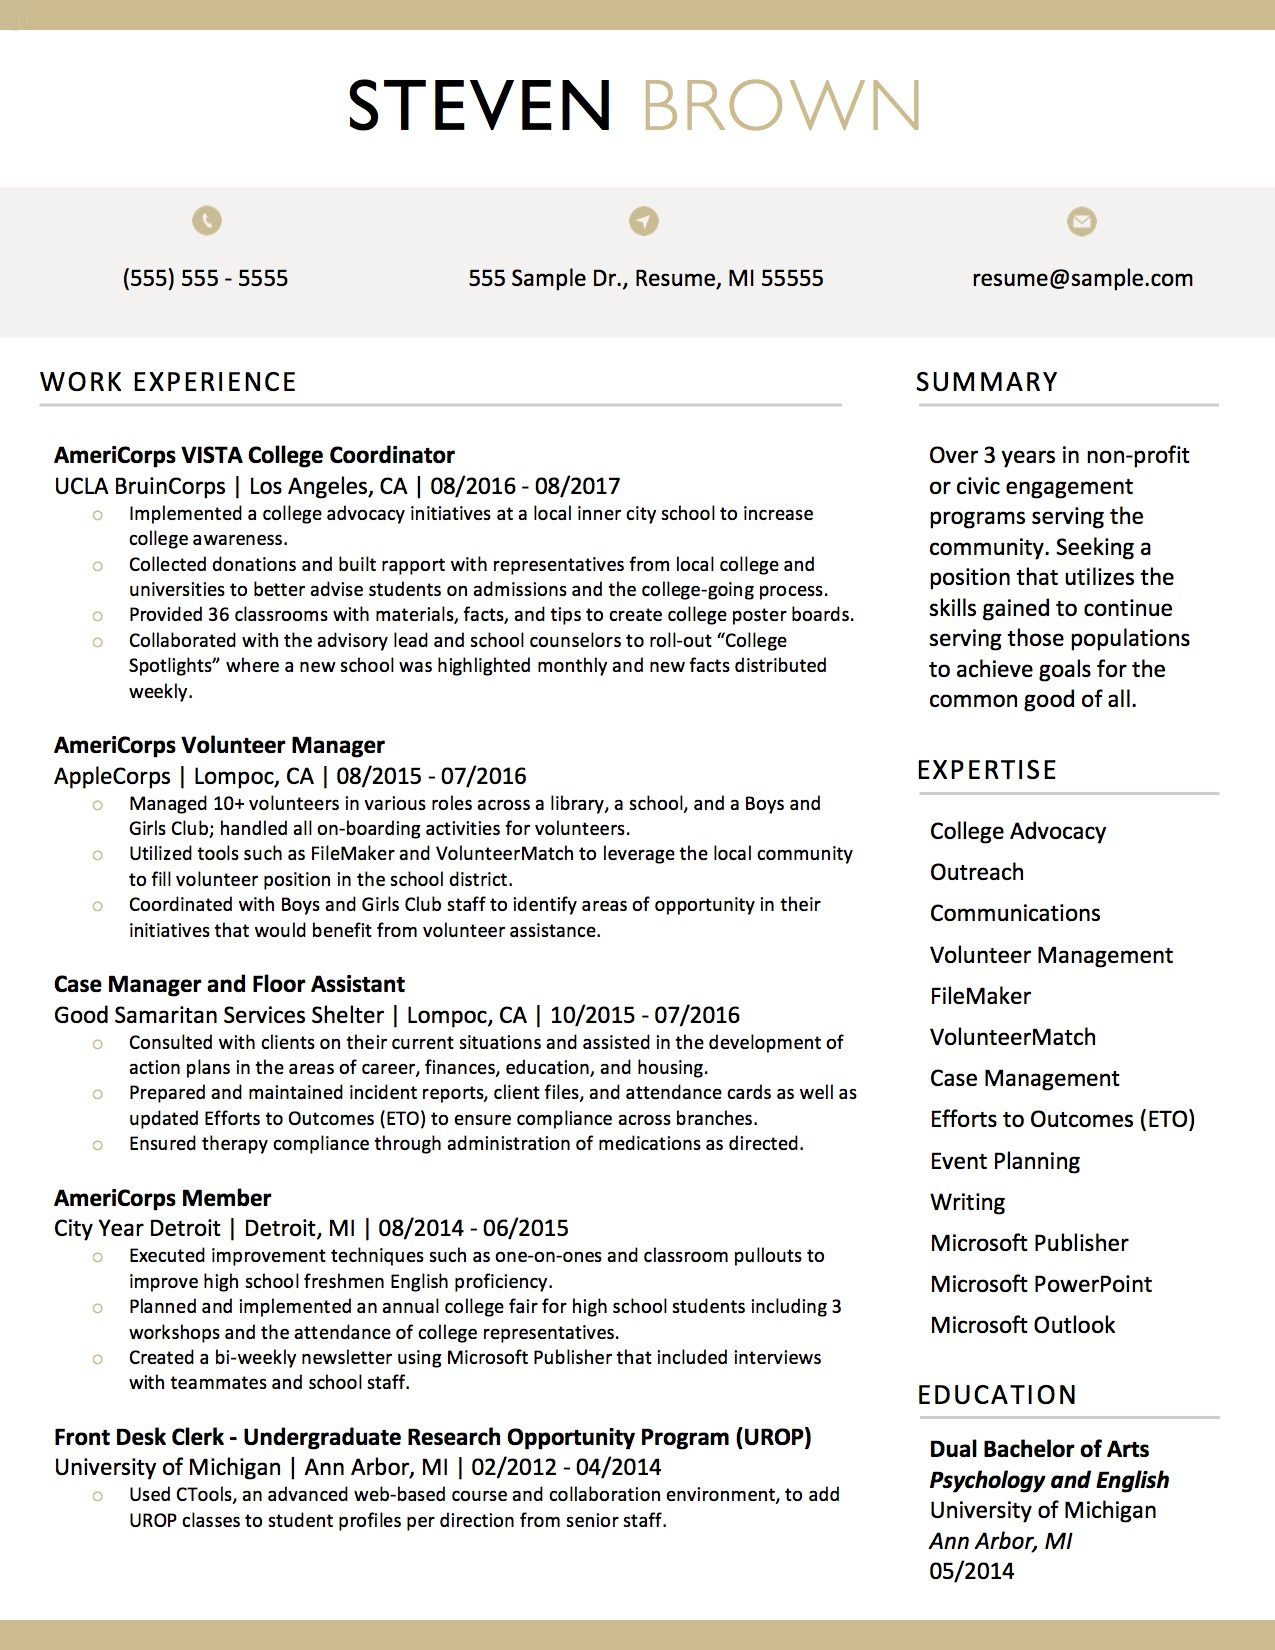 Client Resume #14. Click to Enlarge.